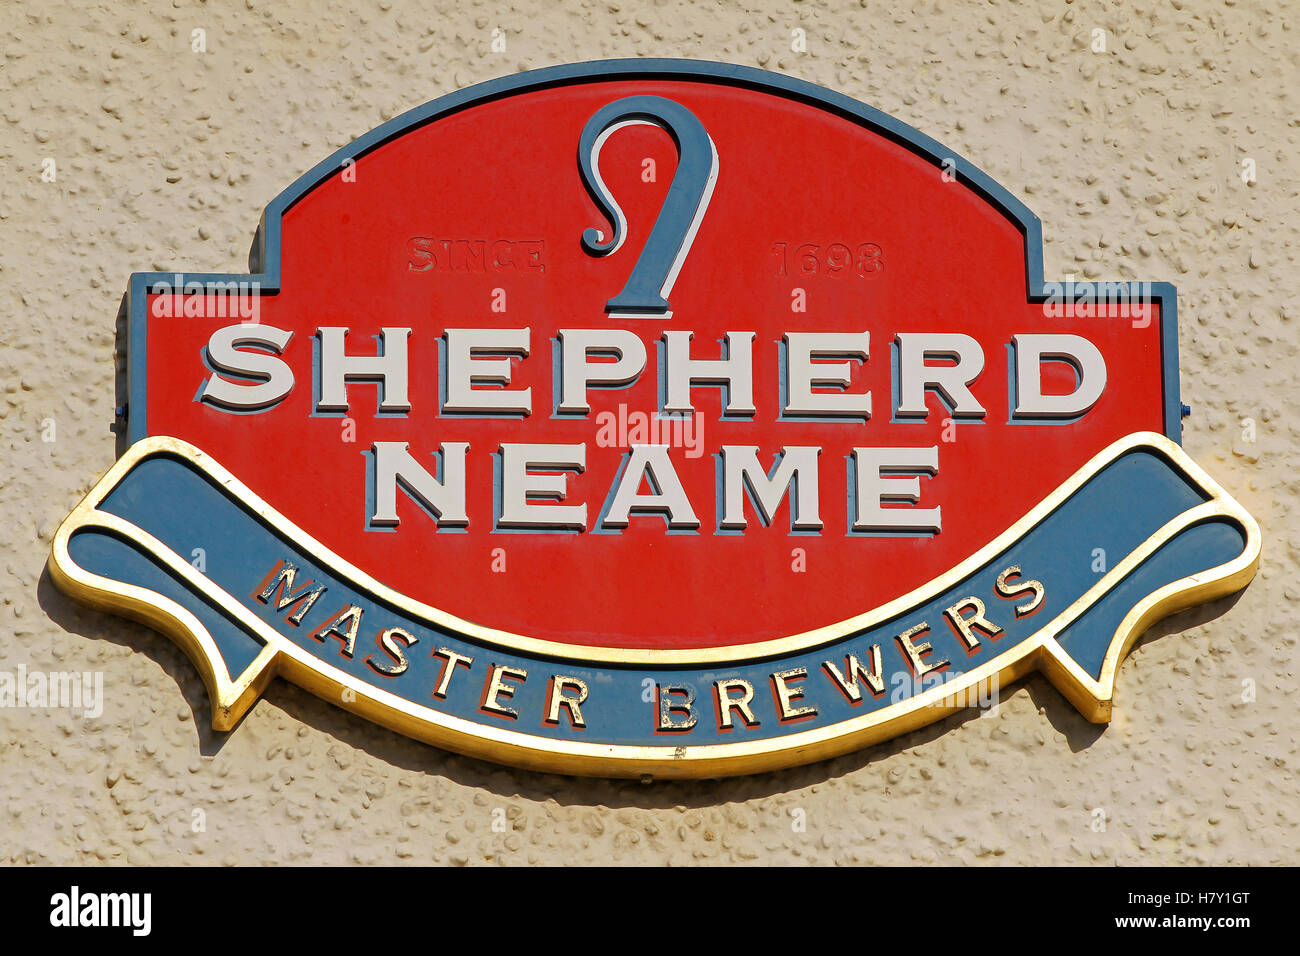 A plaque bearing the Shepherd Neame brewery logo - Stock Image